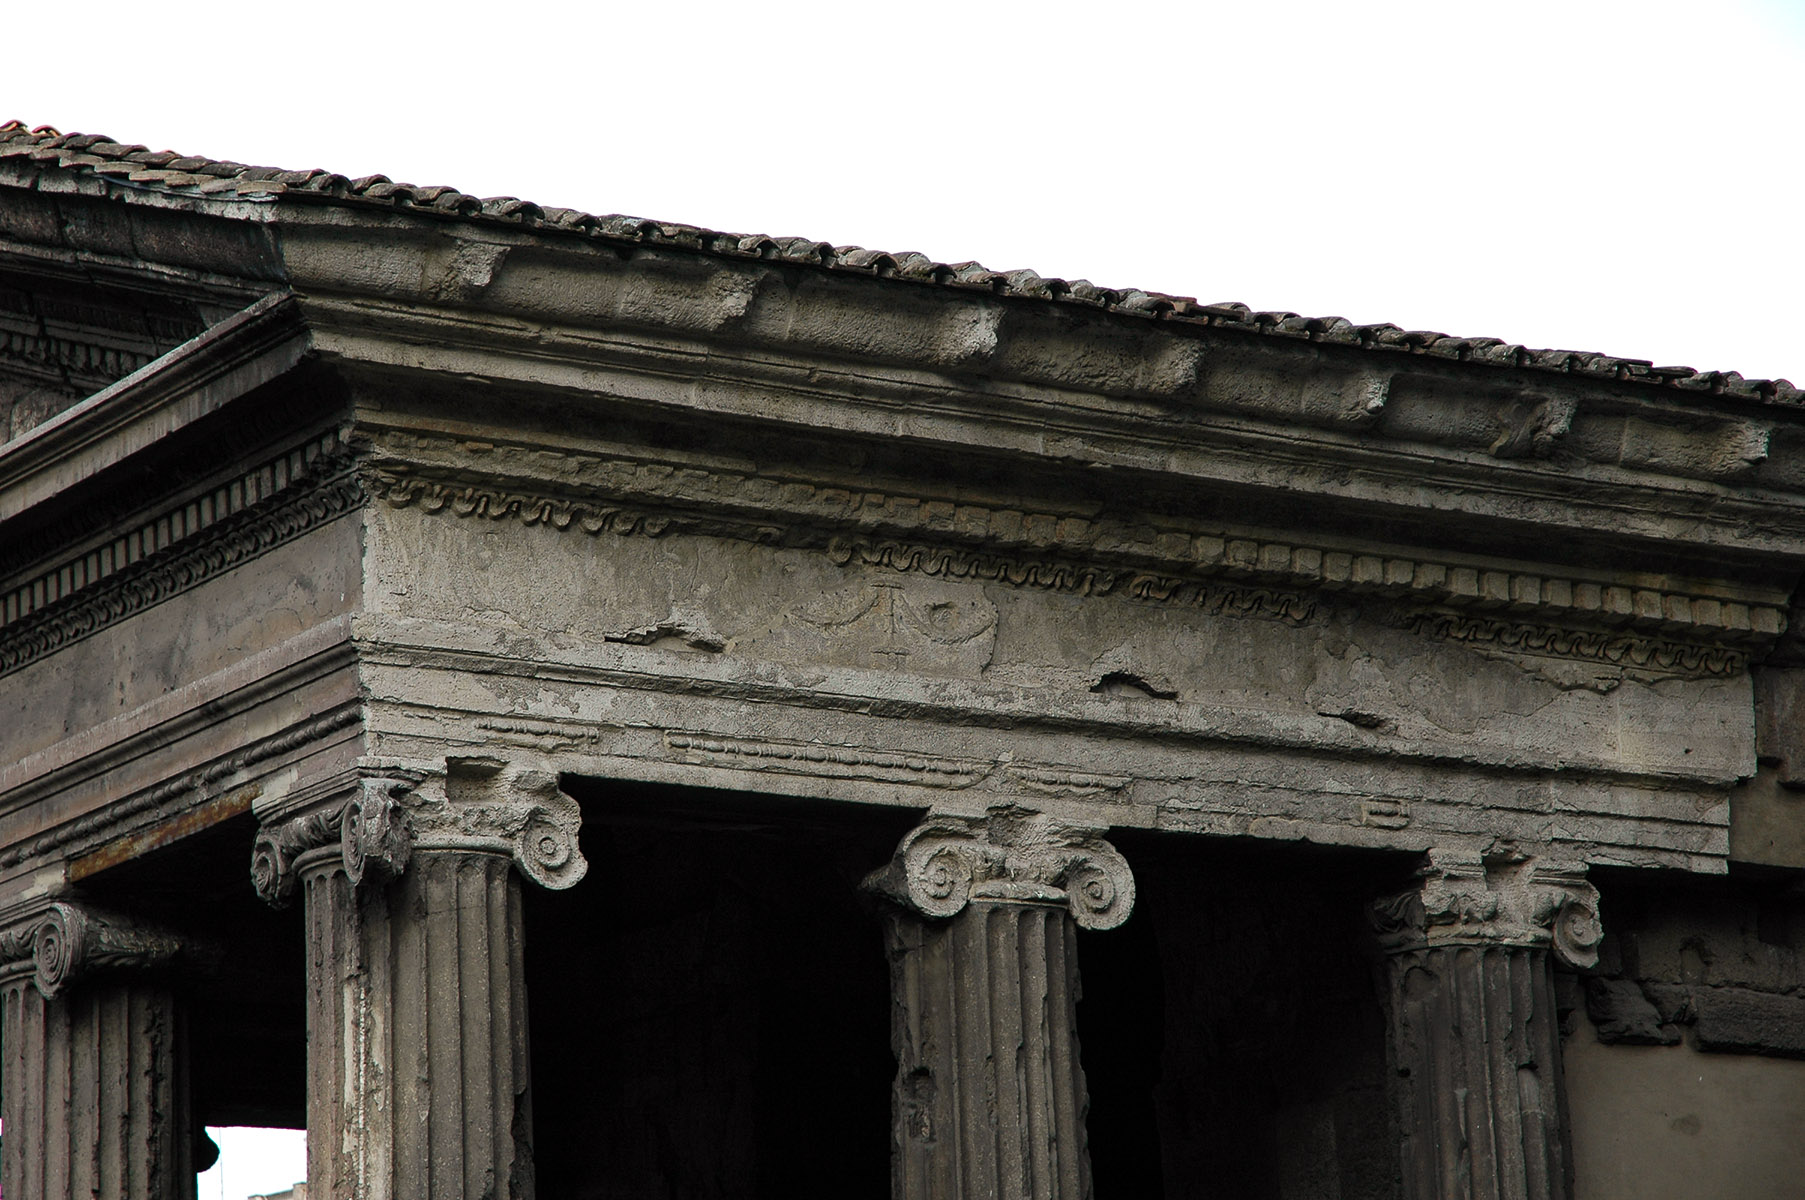 Temple of Portunus in Forum Boarium. (Former erroneous designation — Temple of Fortuna Virilis). Mid-1st cent. BCE. Rome, Forum Boarium